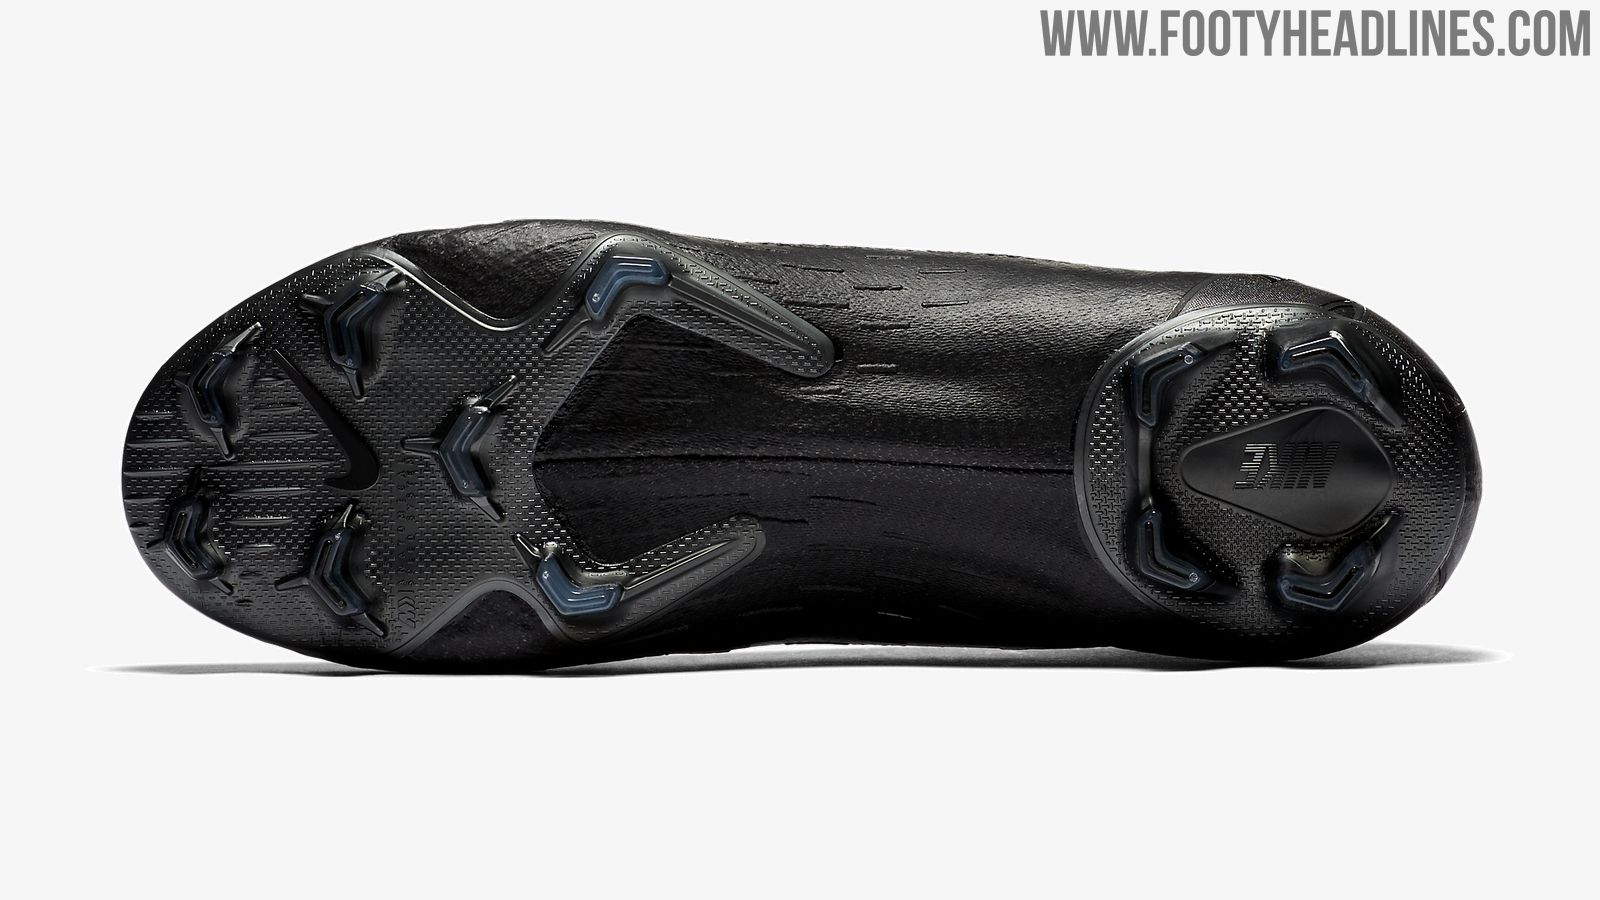 81afd3988 Blackout Nike Mercurial Superfly 360 Stealth Ops Boots Released ...